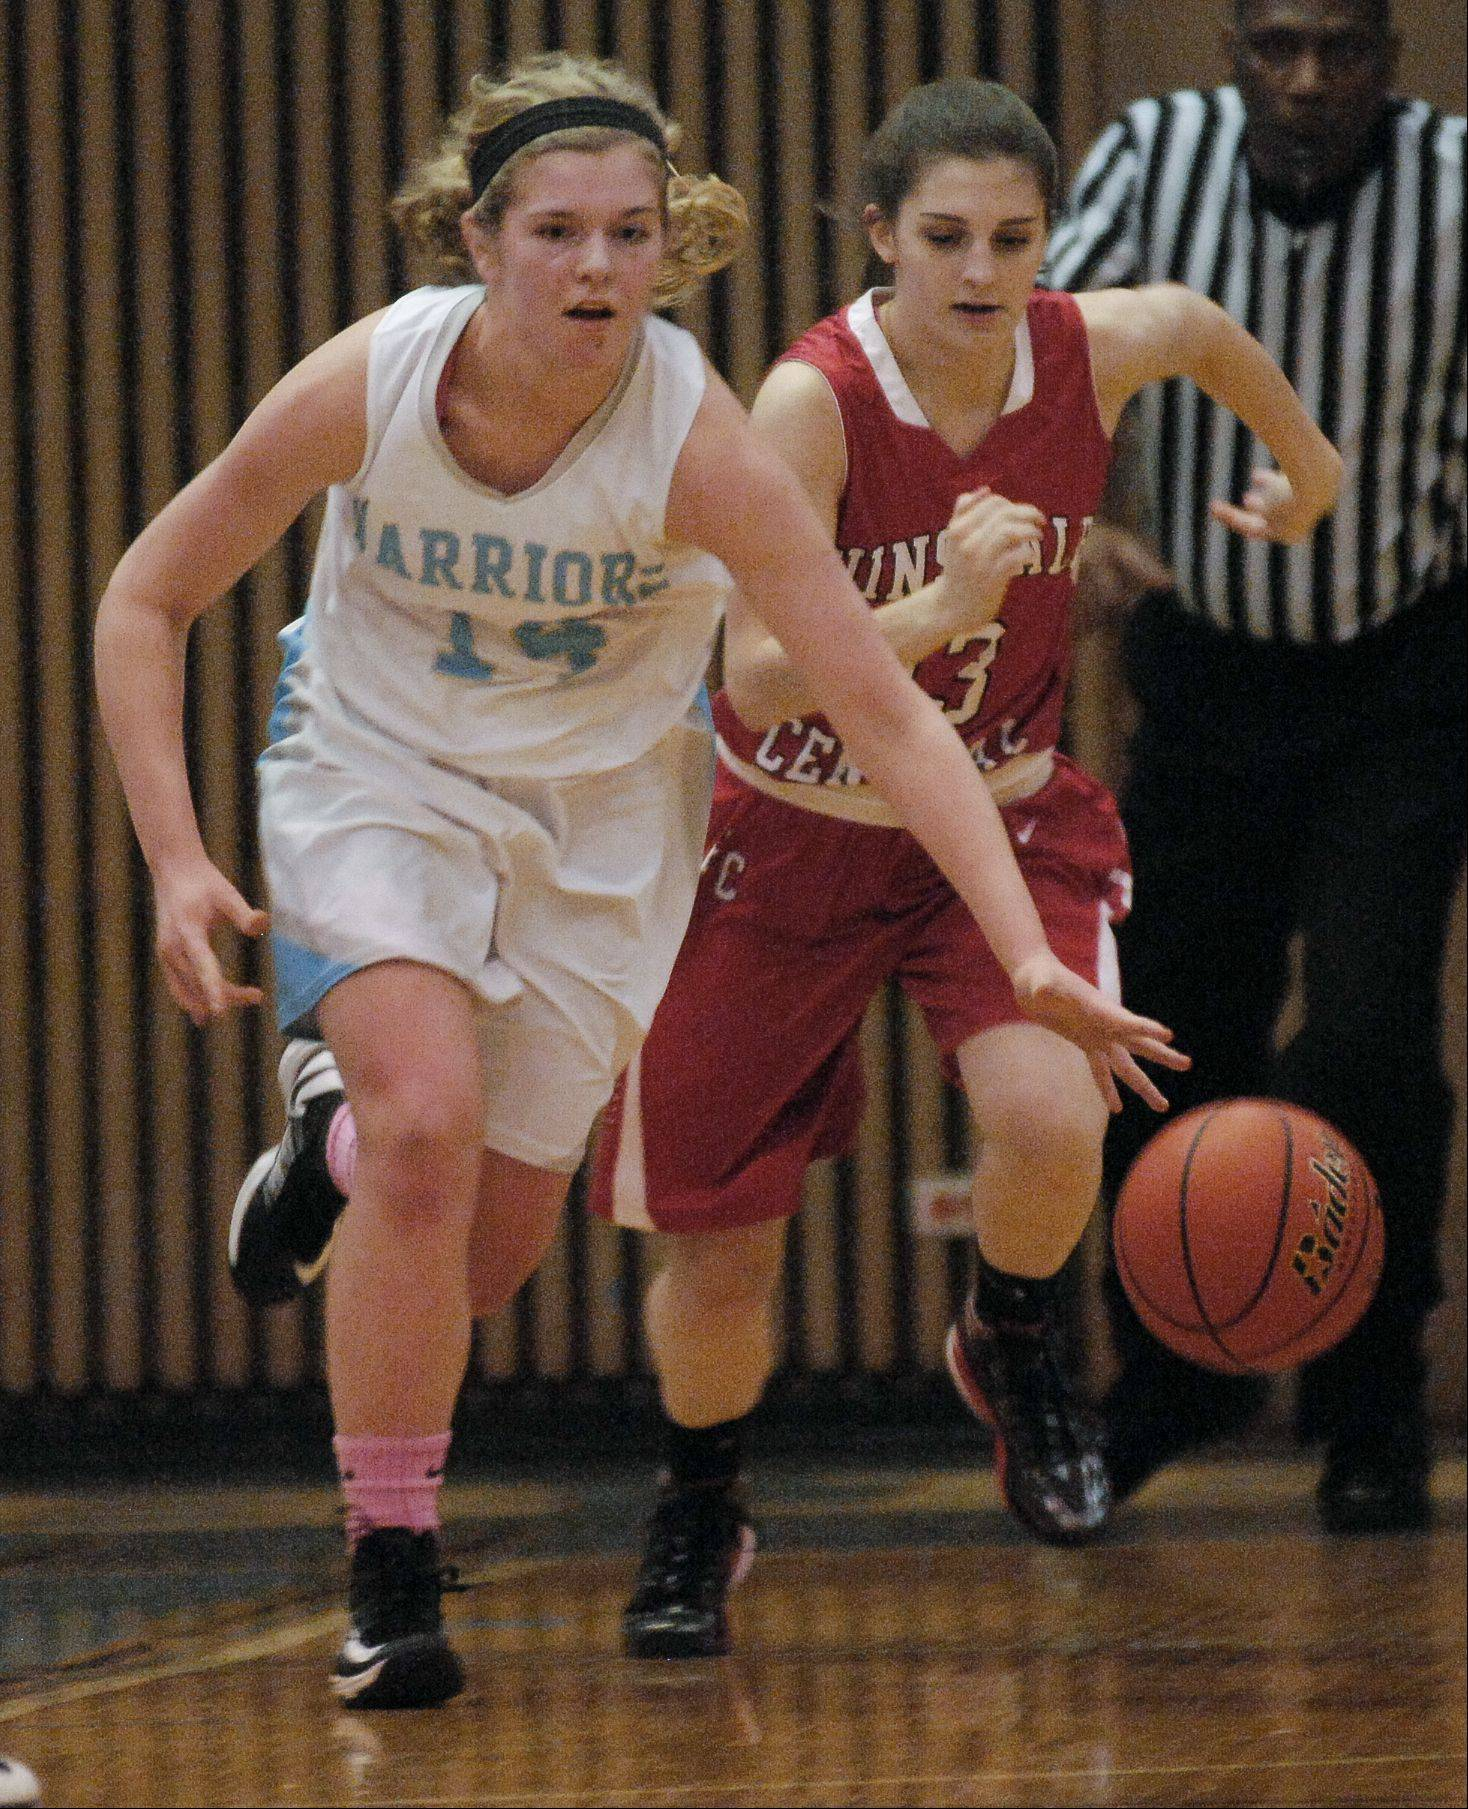 Lauren Carroll of Willowbrook breaks away from Payton Katich of Hinsdale Central Wednesday night during girls basketball in Vila Park.